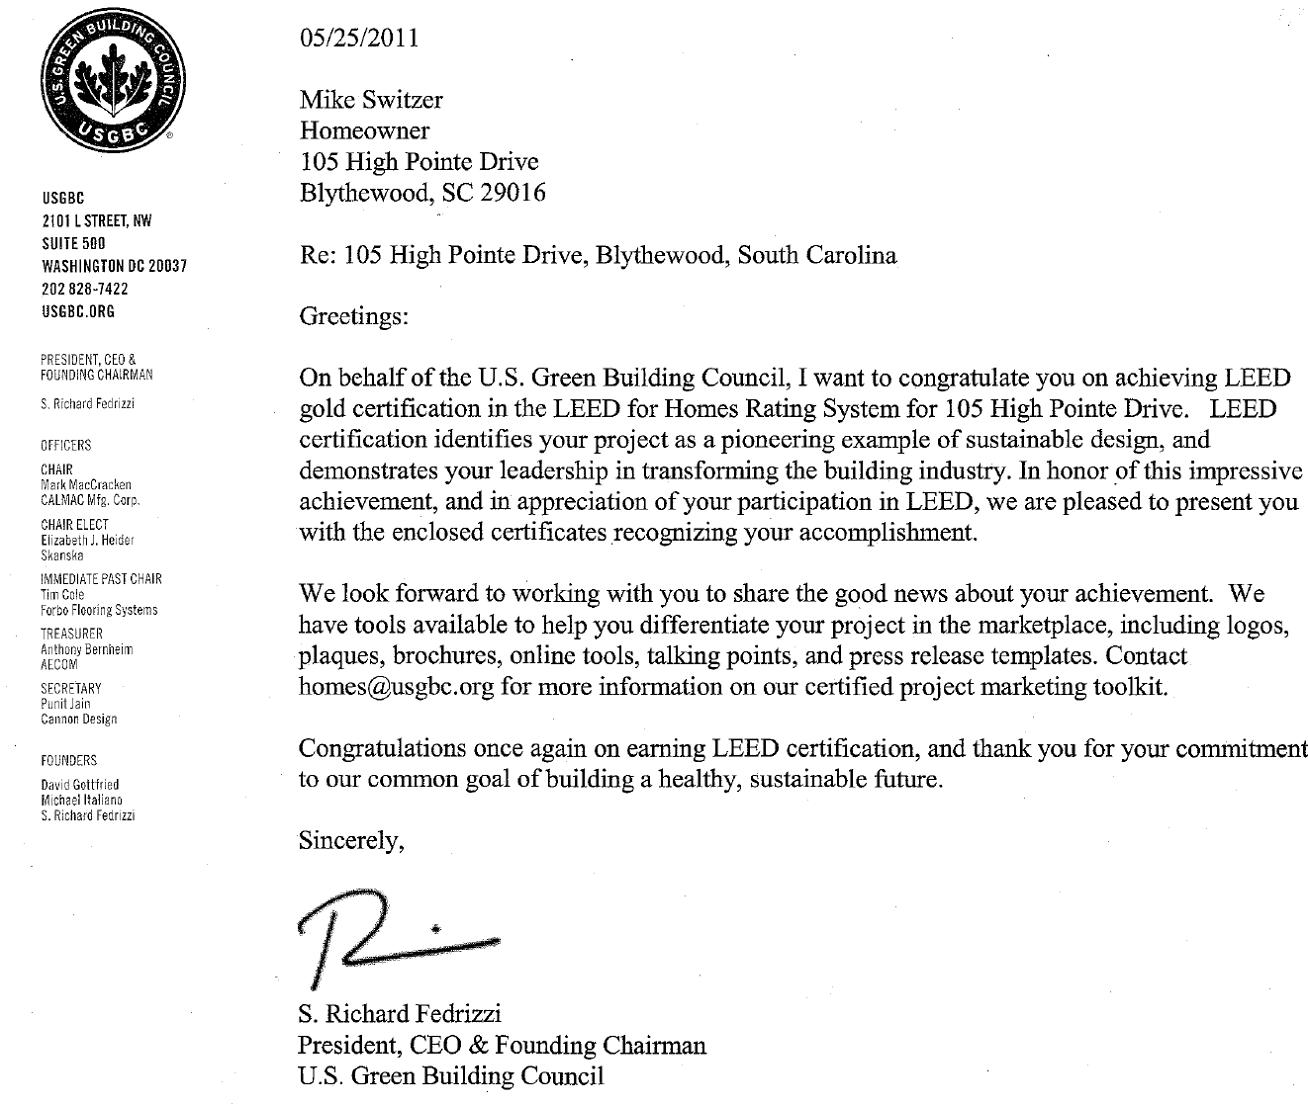 leed letter template - going green